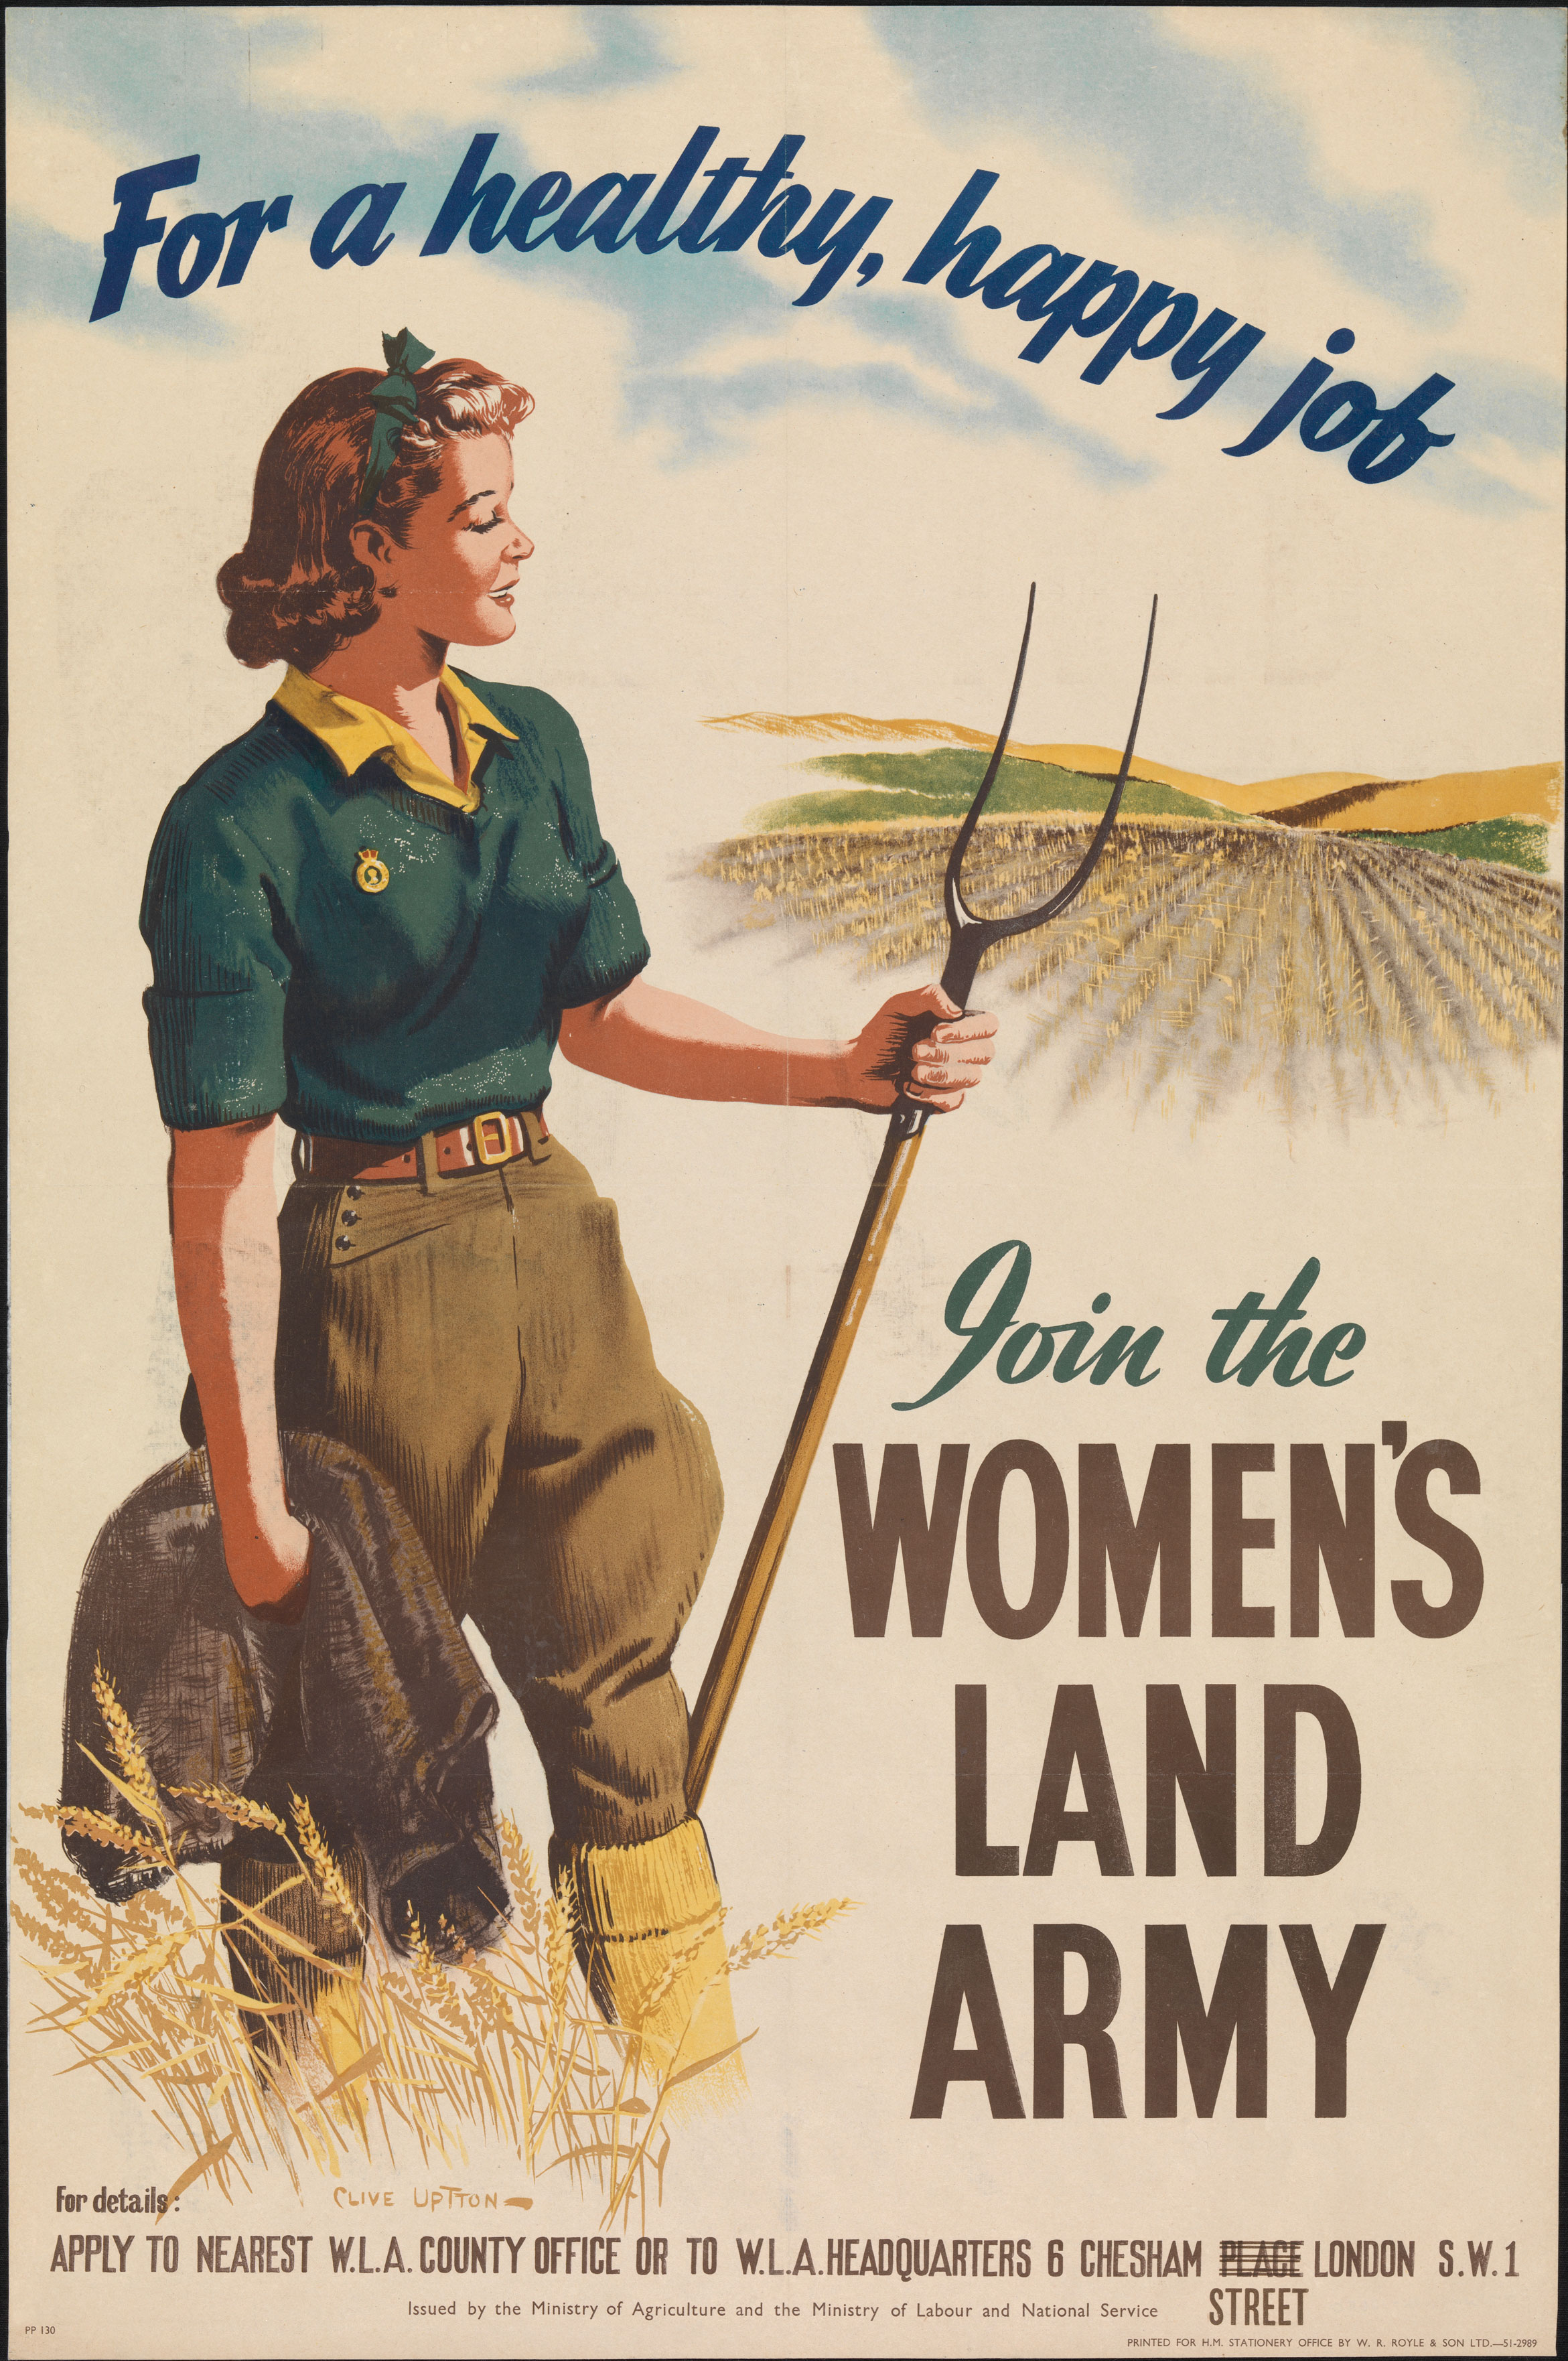 A young woman, wearing the Land Army uniform, stands with a pitchfork in her left hand and holds her jacket in her right. She surveys a field of wheat.